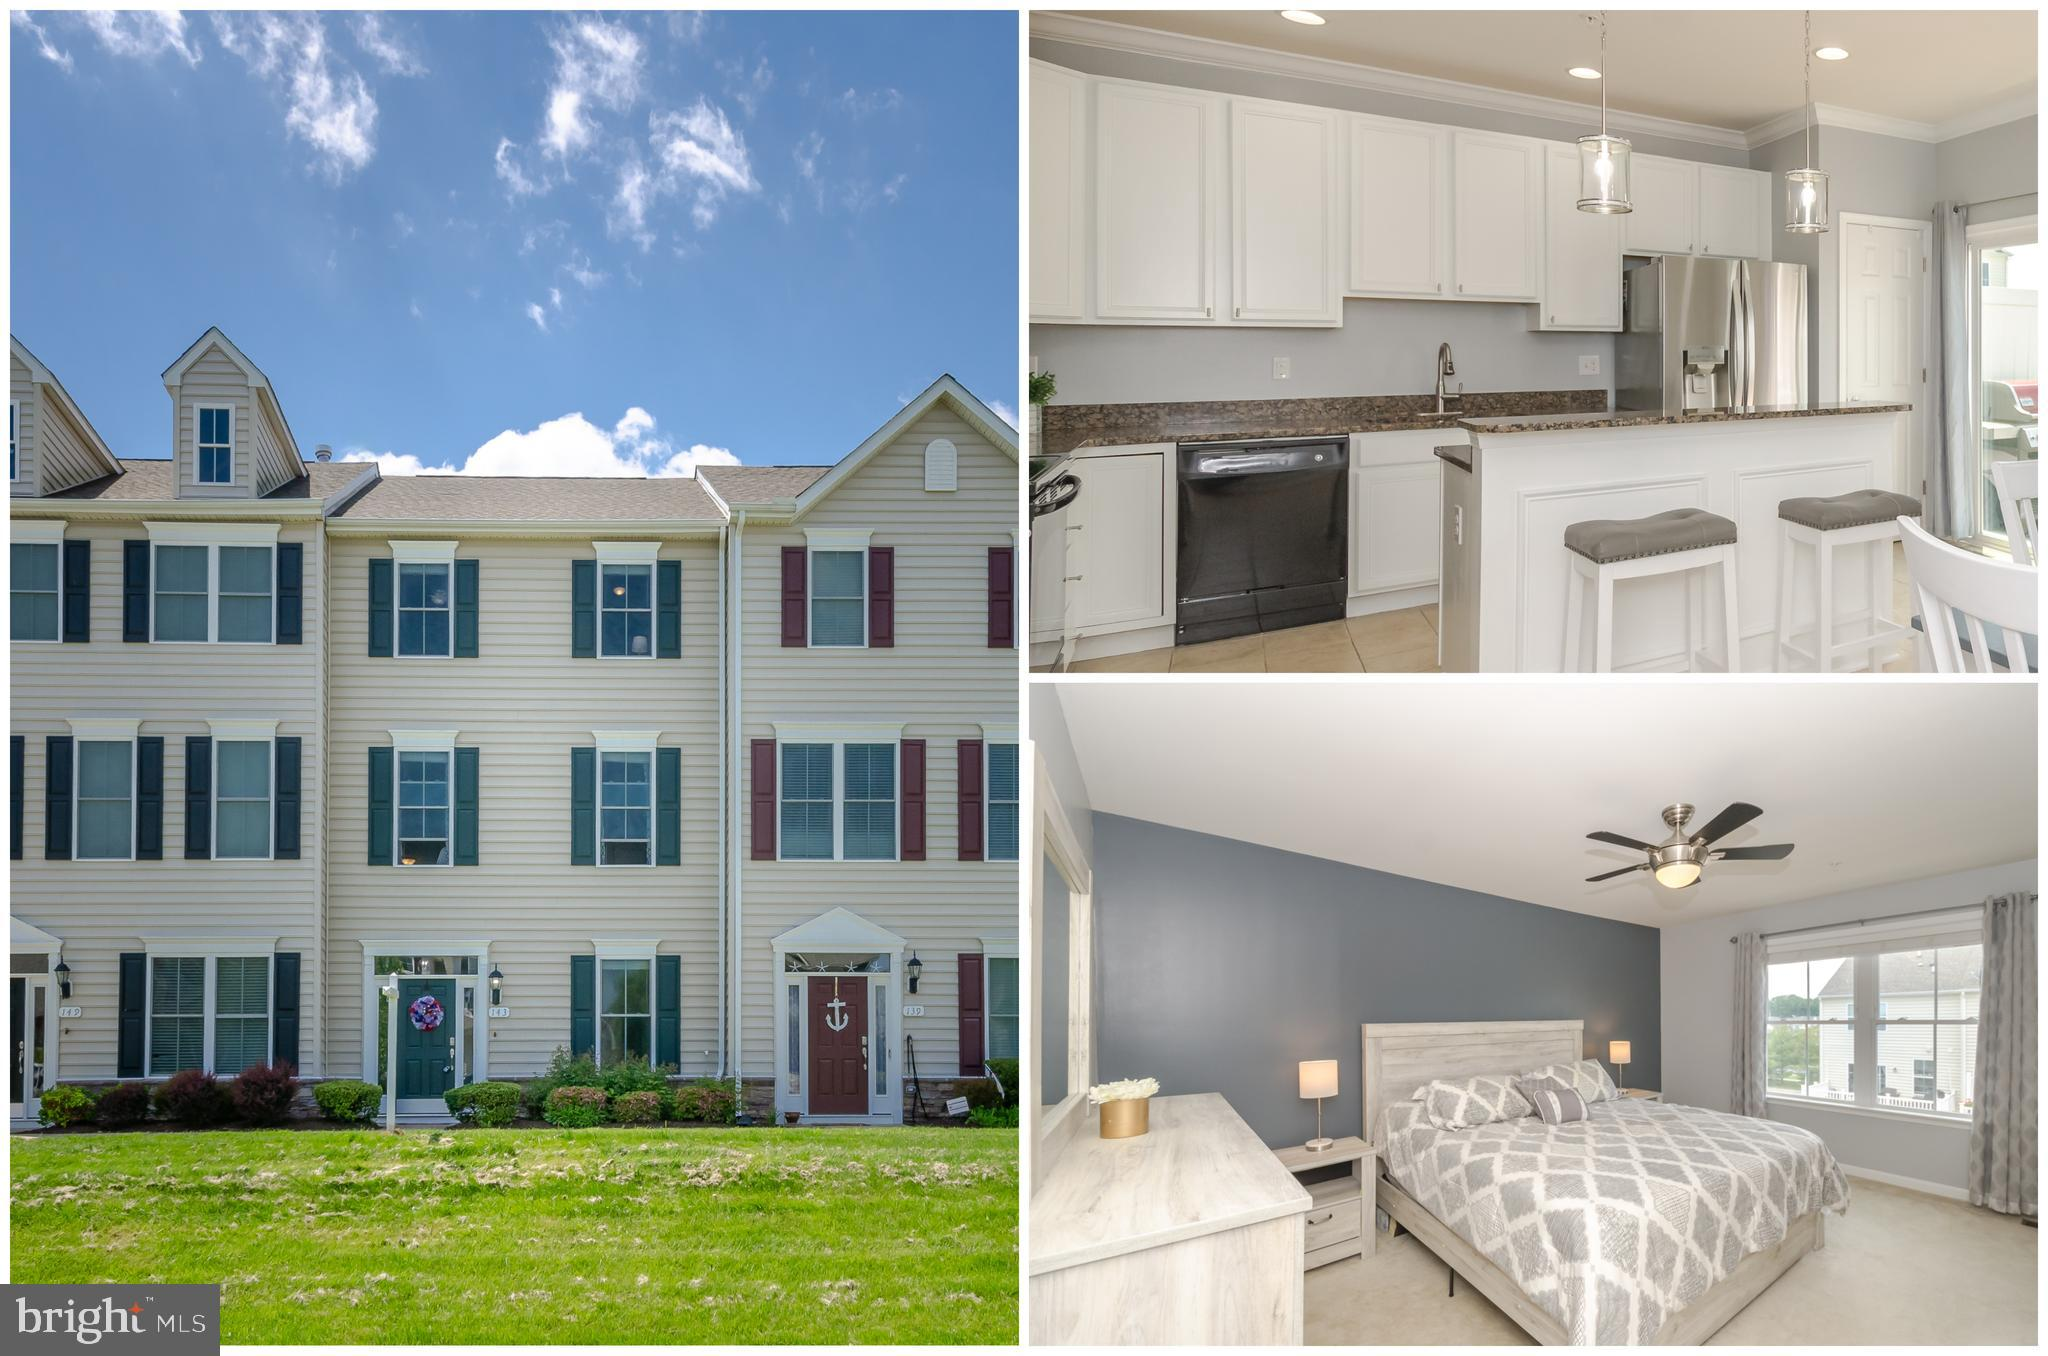 UNDER CONTRACT - OPEN HOUSE CANCELED! Don't wait for new construction - this sought after Ellendale Townhome with 4 Bedrooms + 3.5 FULL Baths is ready for you to move in and enjoy NOW!! You're going to fall in love with the details that not only make this home turn key, but also feel high end!  The moldings will catch your eye as soon as you walk in, the upgraded flooring can be found throughout, the white kitchen cabinets in the kitchen offer tons of storage plus there is huge island, the granite makes it feel gourmet, the light fixtures have been updated offering a modern tone, the 4th Bedroom with it's own full bath is perfect for guests, an office or au pair suite. Need storage? Wait until you see all the built ins found in the 2 car garage. The Ellendale Community is conveniently located at the first exit off the Chesapeake Bay Bridge, just minutes to shopping, waterfront dining, parks, beaches and trails. Do not wait! It's time to make THE SHORE HOME.